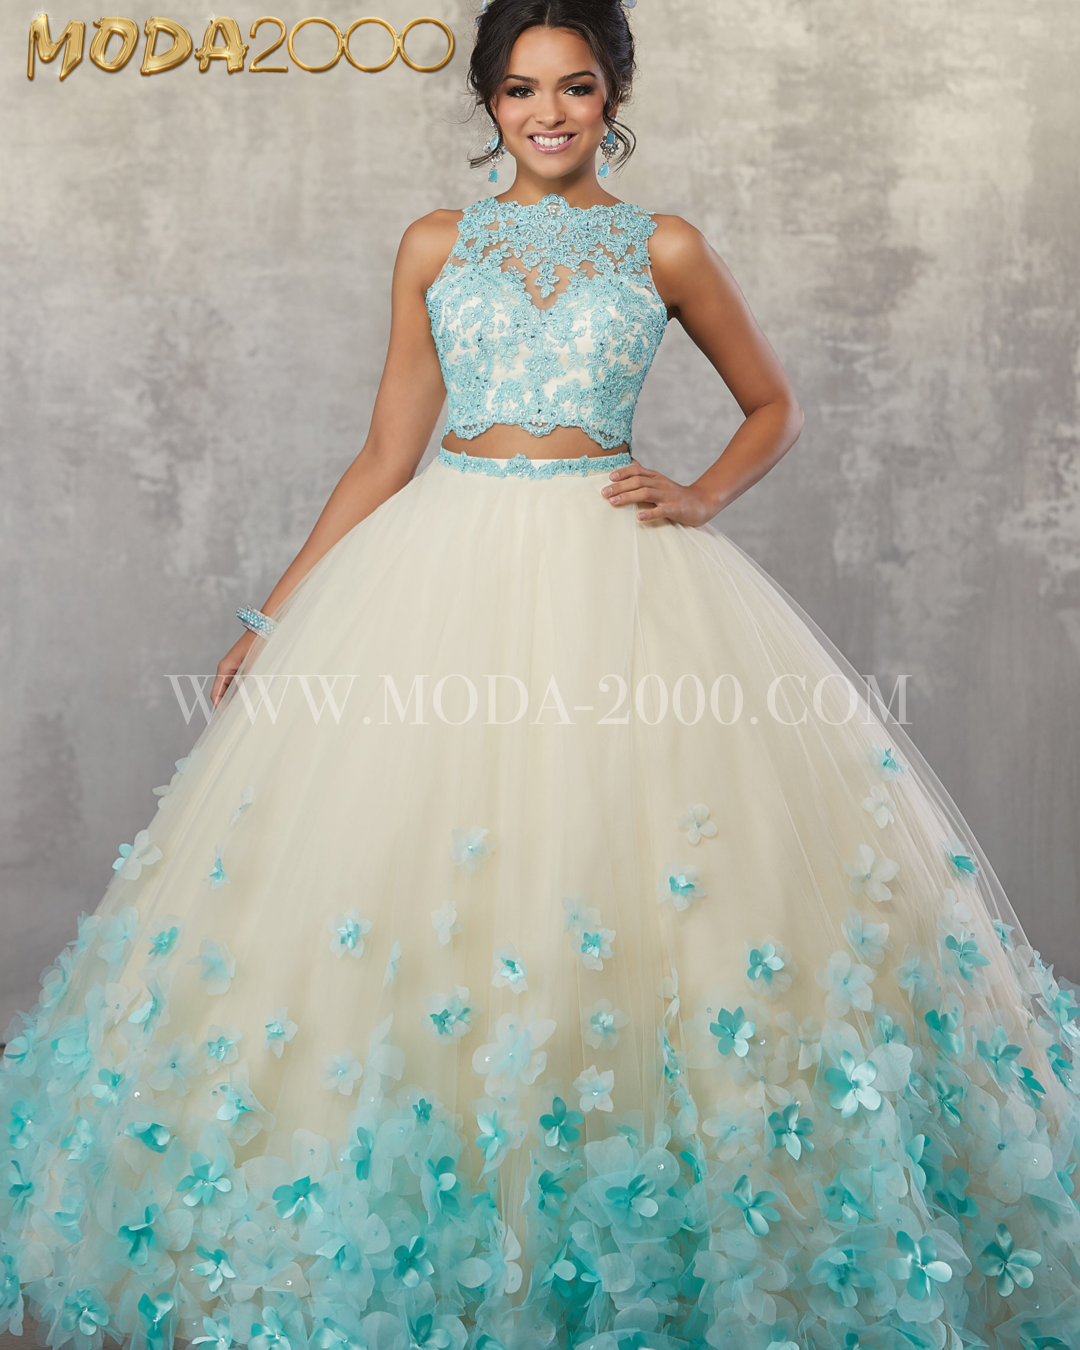 9728630bf7e80 2 piece aqua   champagne quinceañera dress✨ Available at Moda 2000.  Instagram   moda2000inc